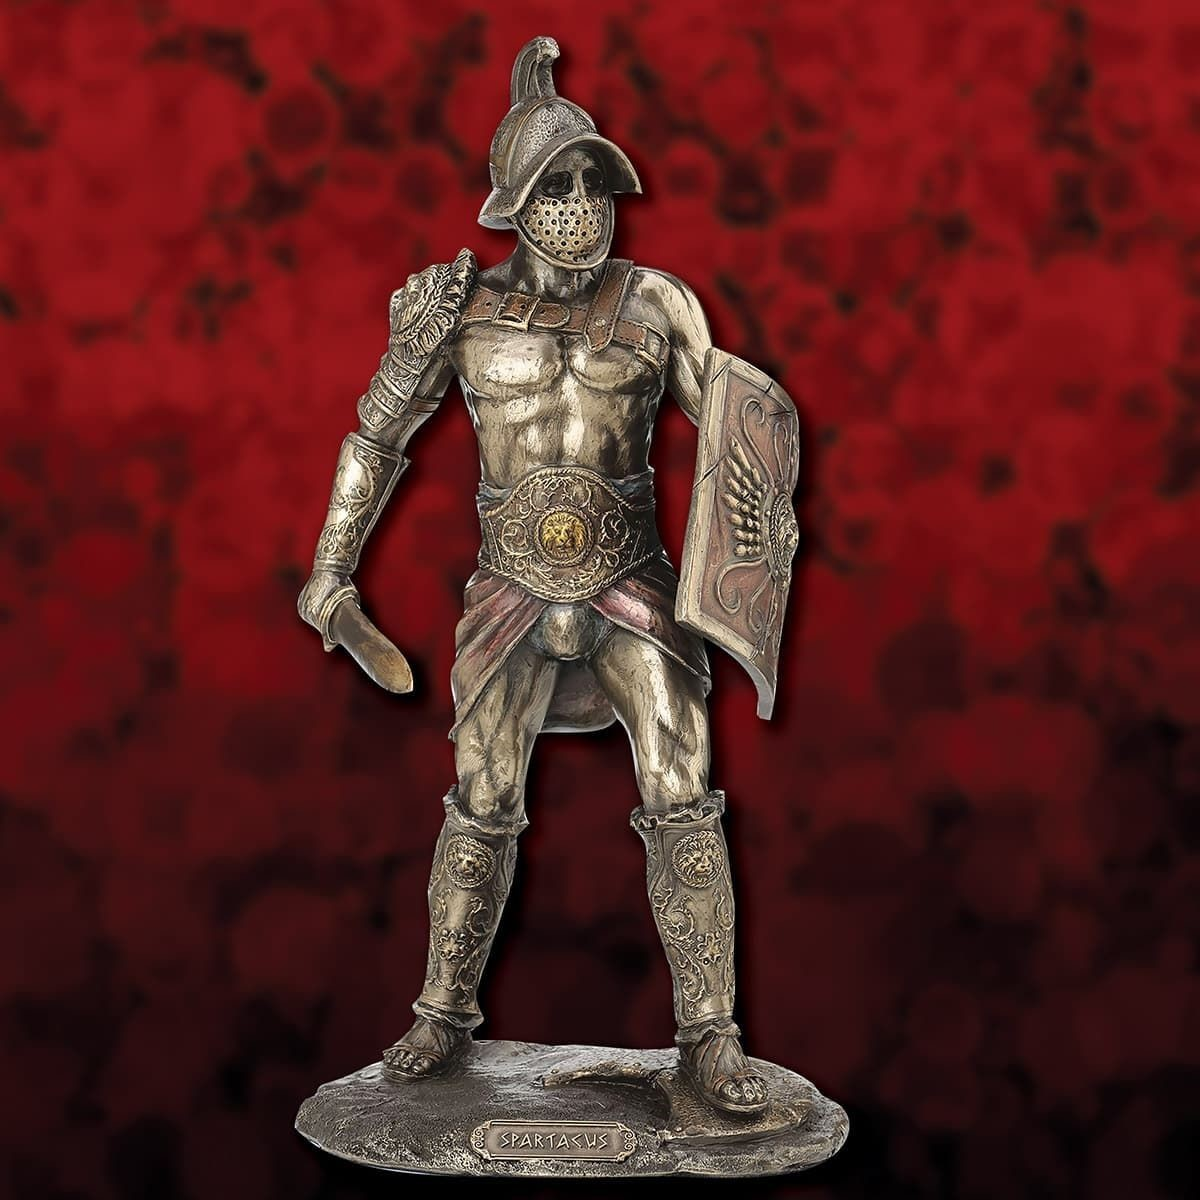 Picture of Spartacus Gladiator Statue Figurine